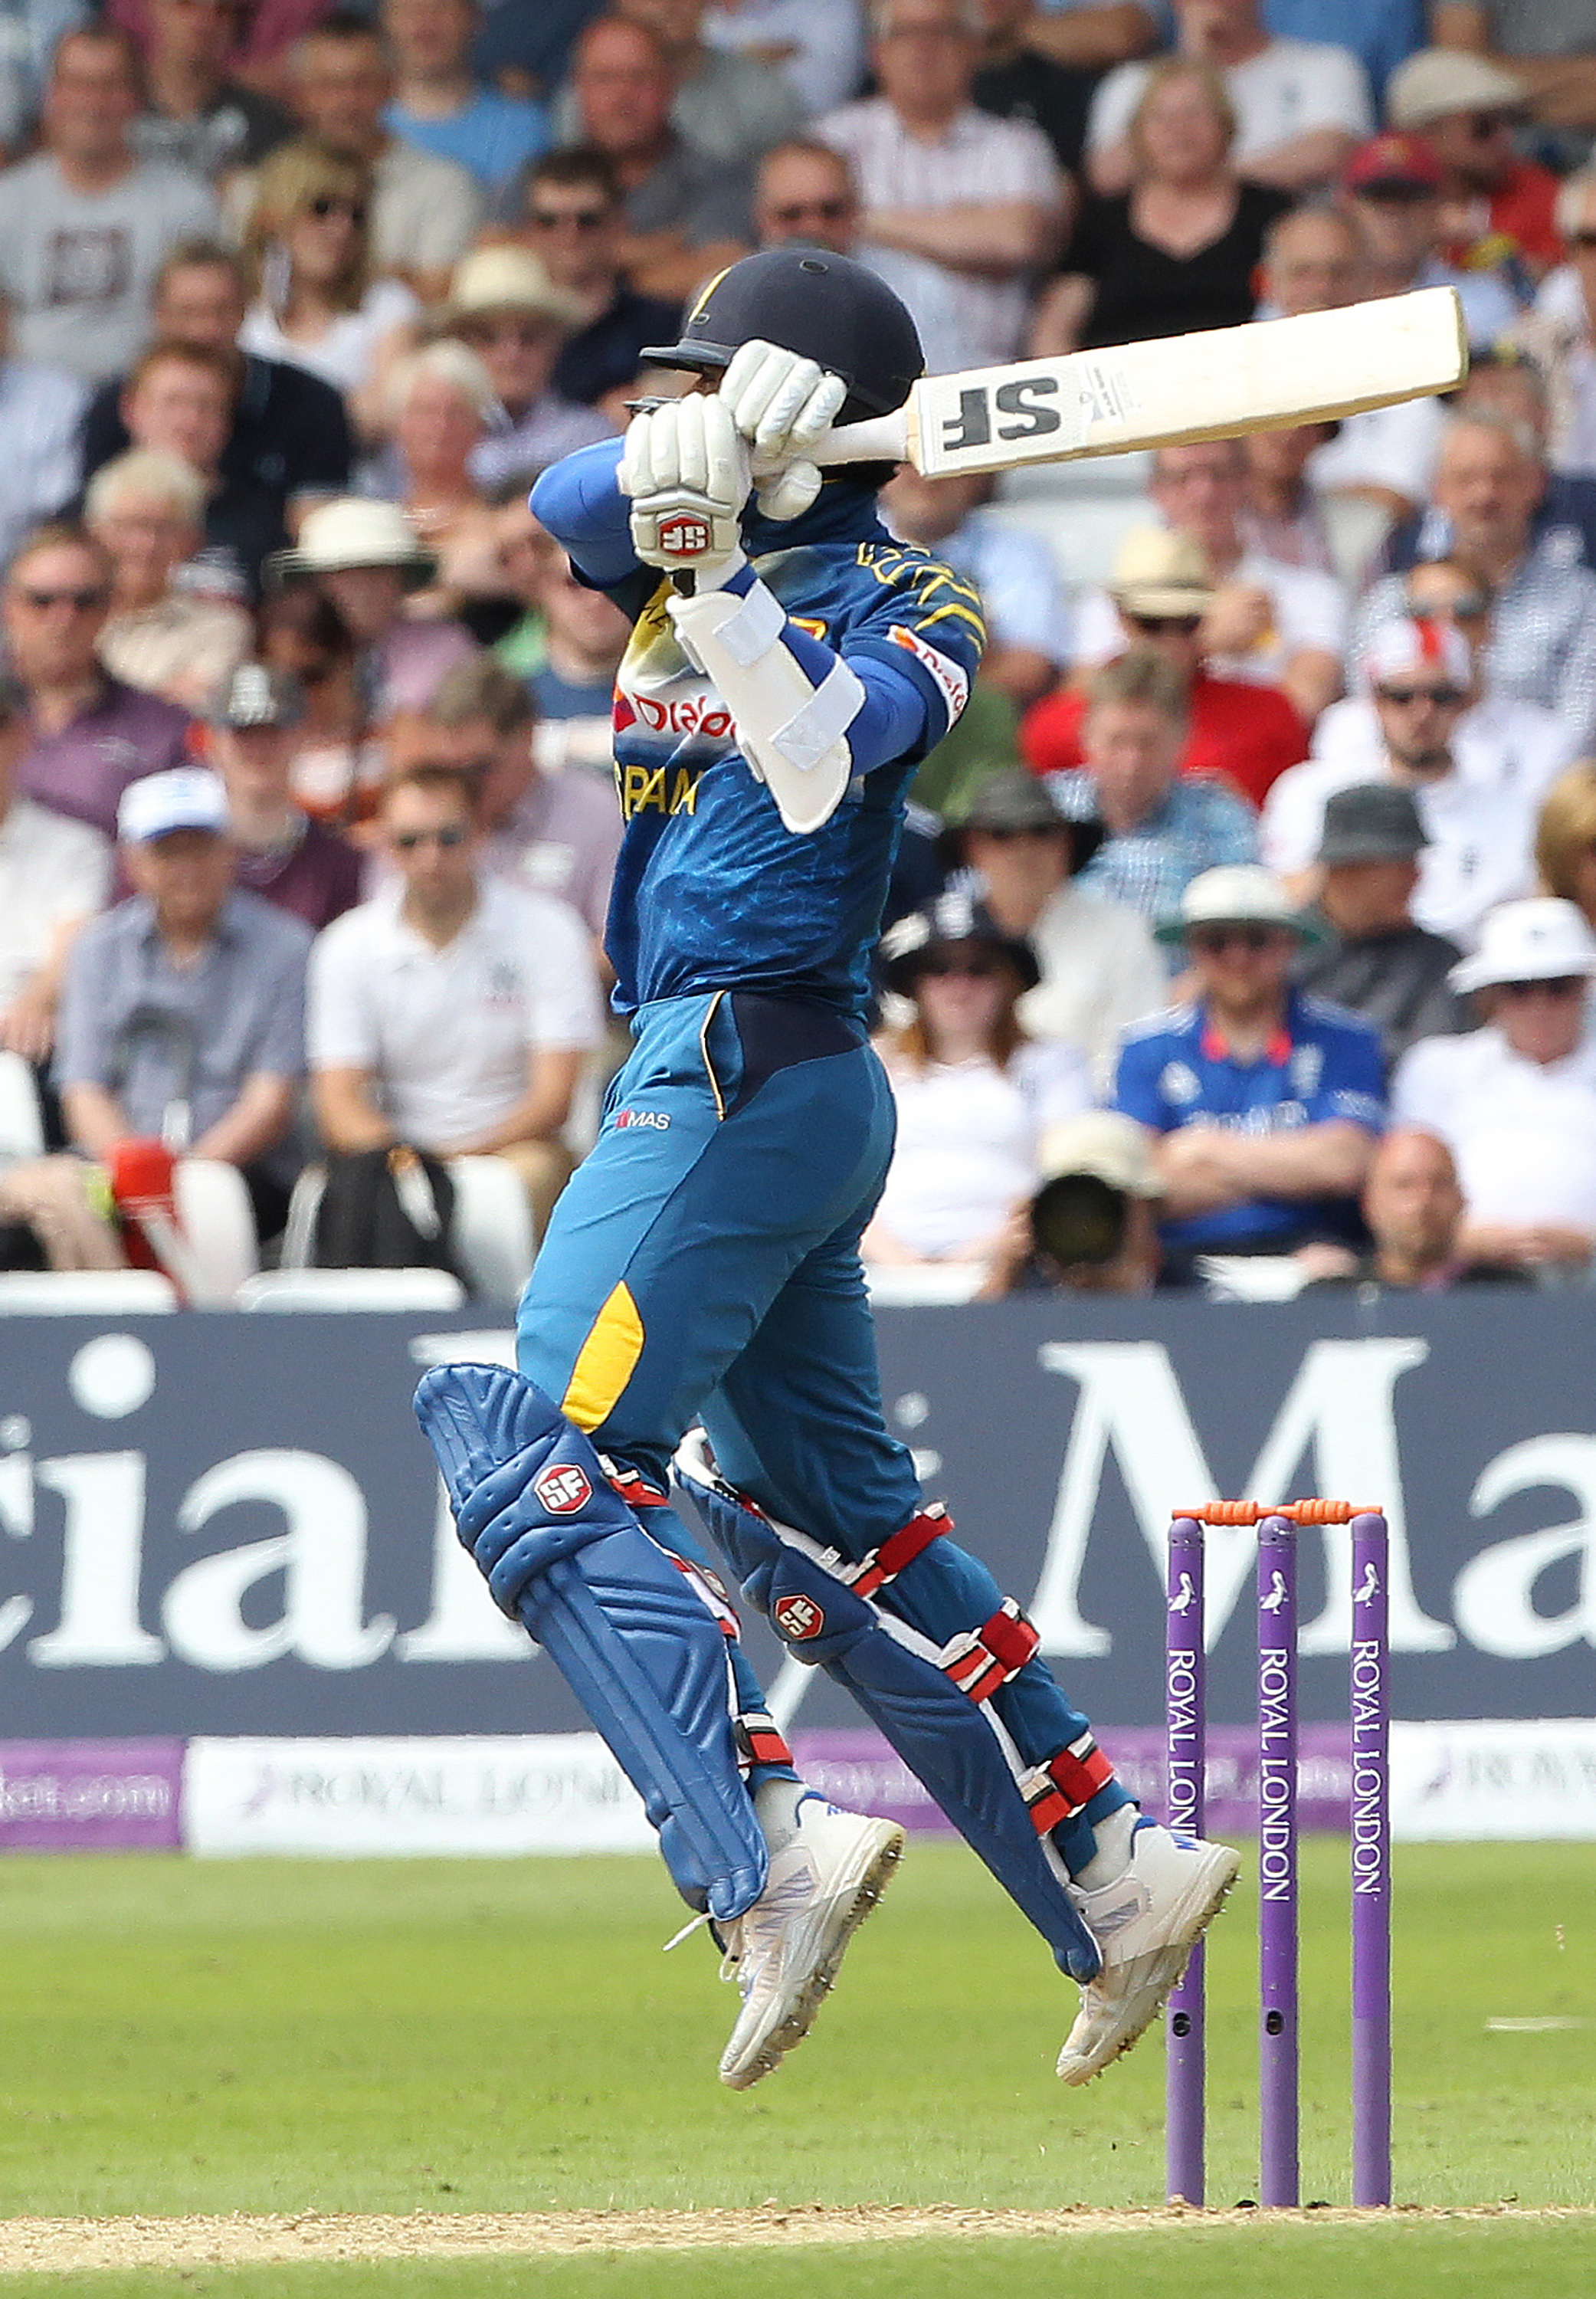 Sri Lanka's Dinesh Chandimal hits a boundary during play in the first one day international (ODI) cricket match between England and Sri Lanka at Trent Bridge cricket ground in Nottingham, central England, on June 21, 2016. England captain Eoin Morgan won the toss and elected to field against Sri Lanka in the first one-day international at Trent Bridge on Tuesday. / AFP PHOTO / Lindsey PARNABY